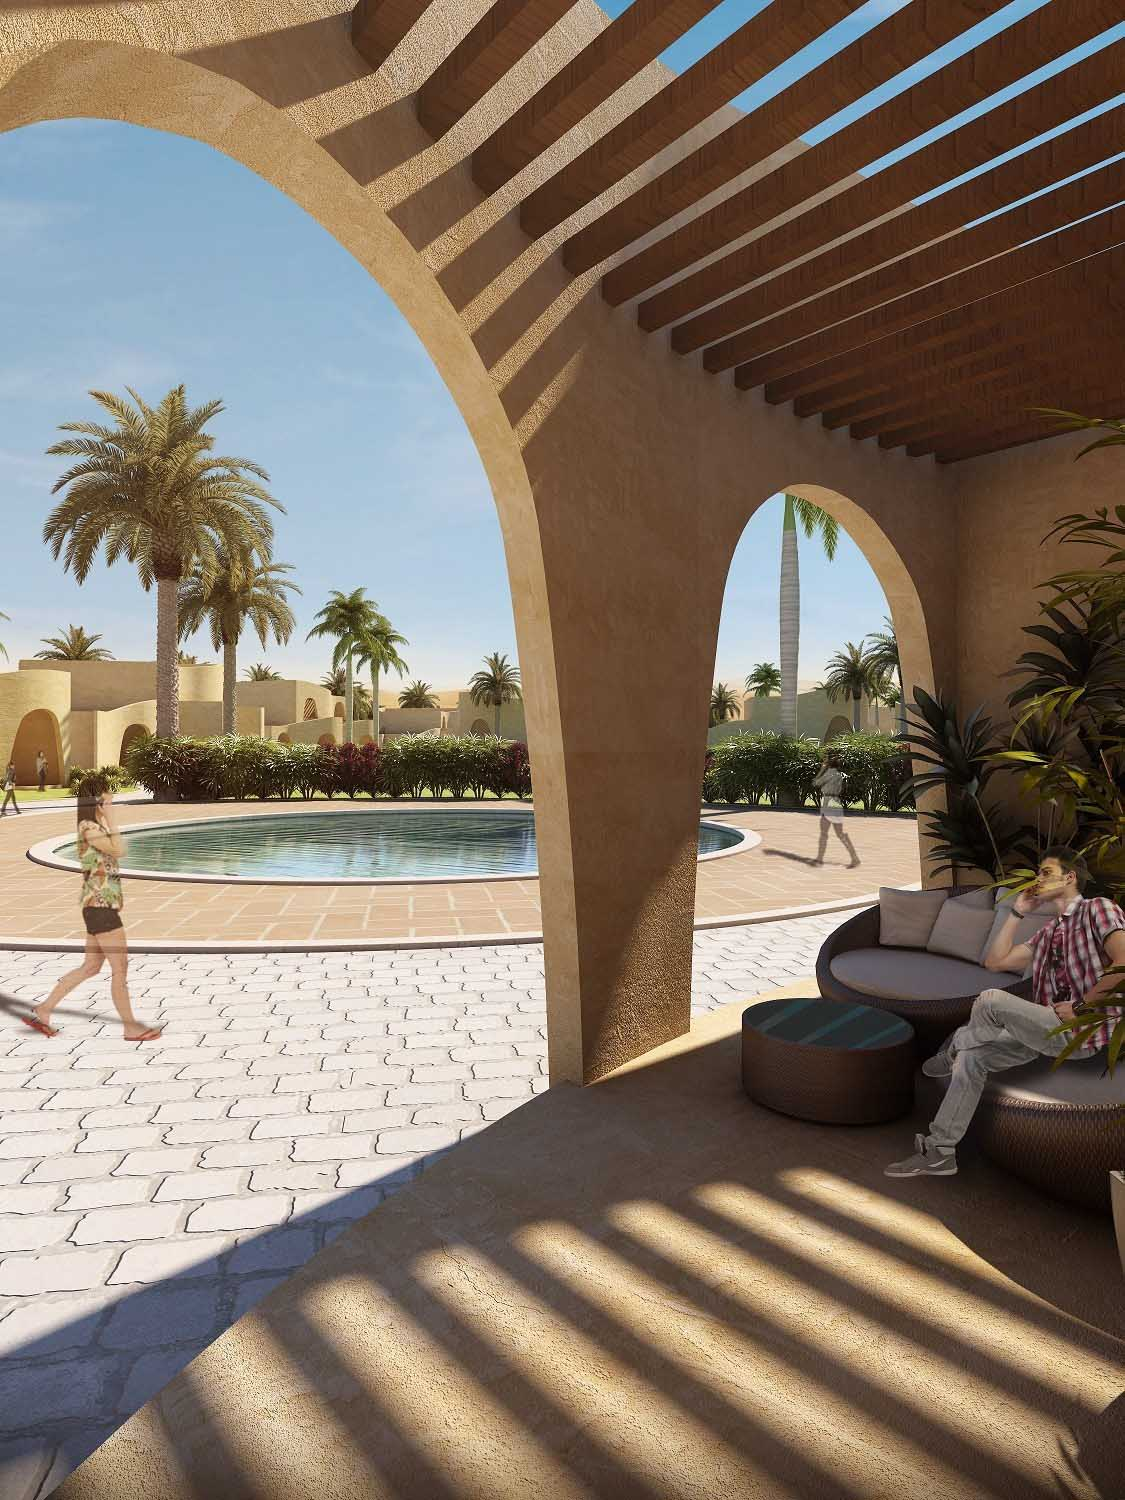 VIEW OF THE ROOM DECK SANJAY PURI ARCHITECTS